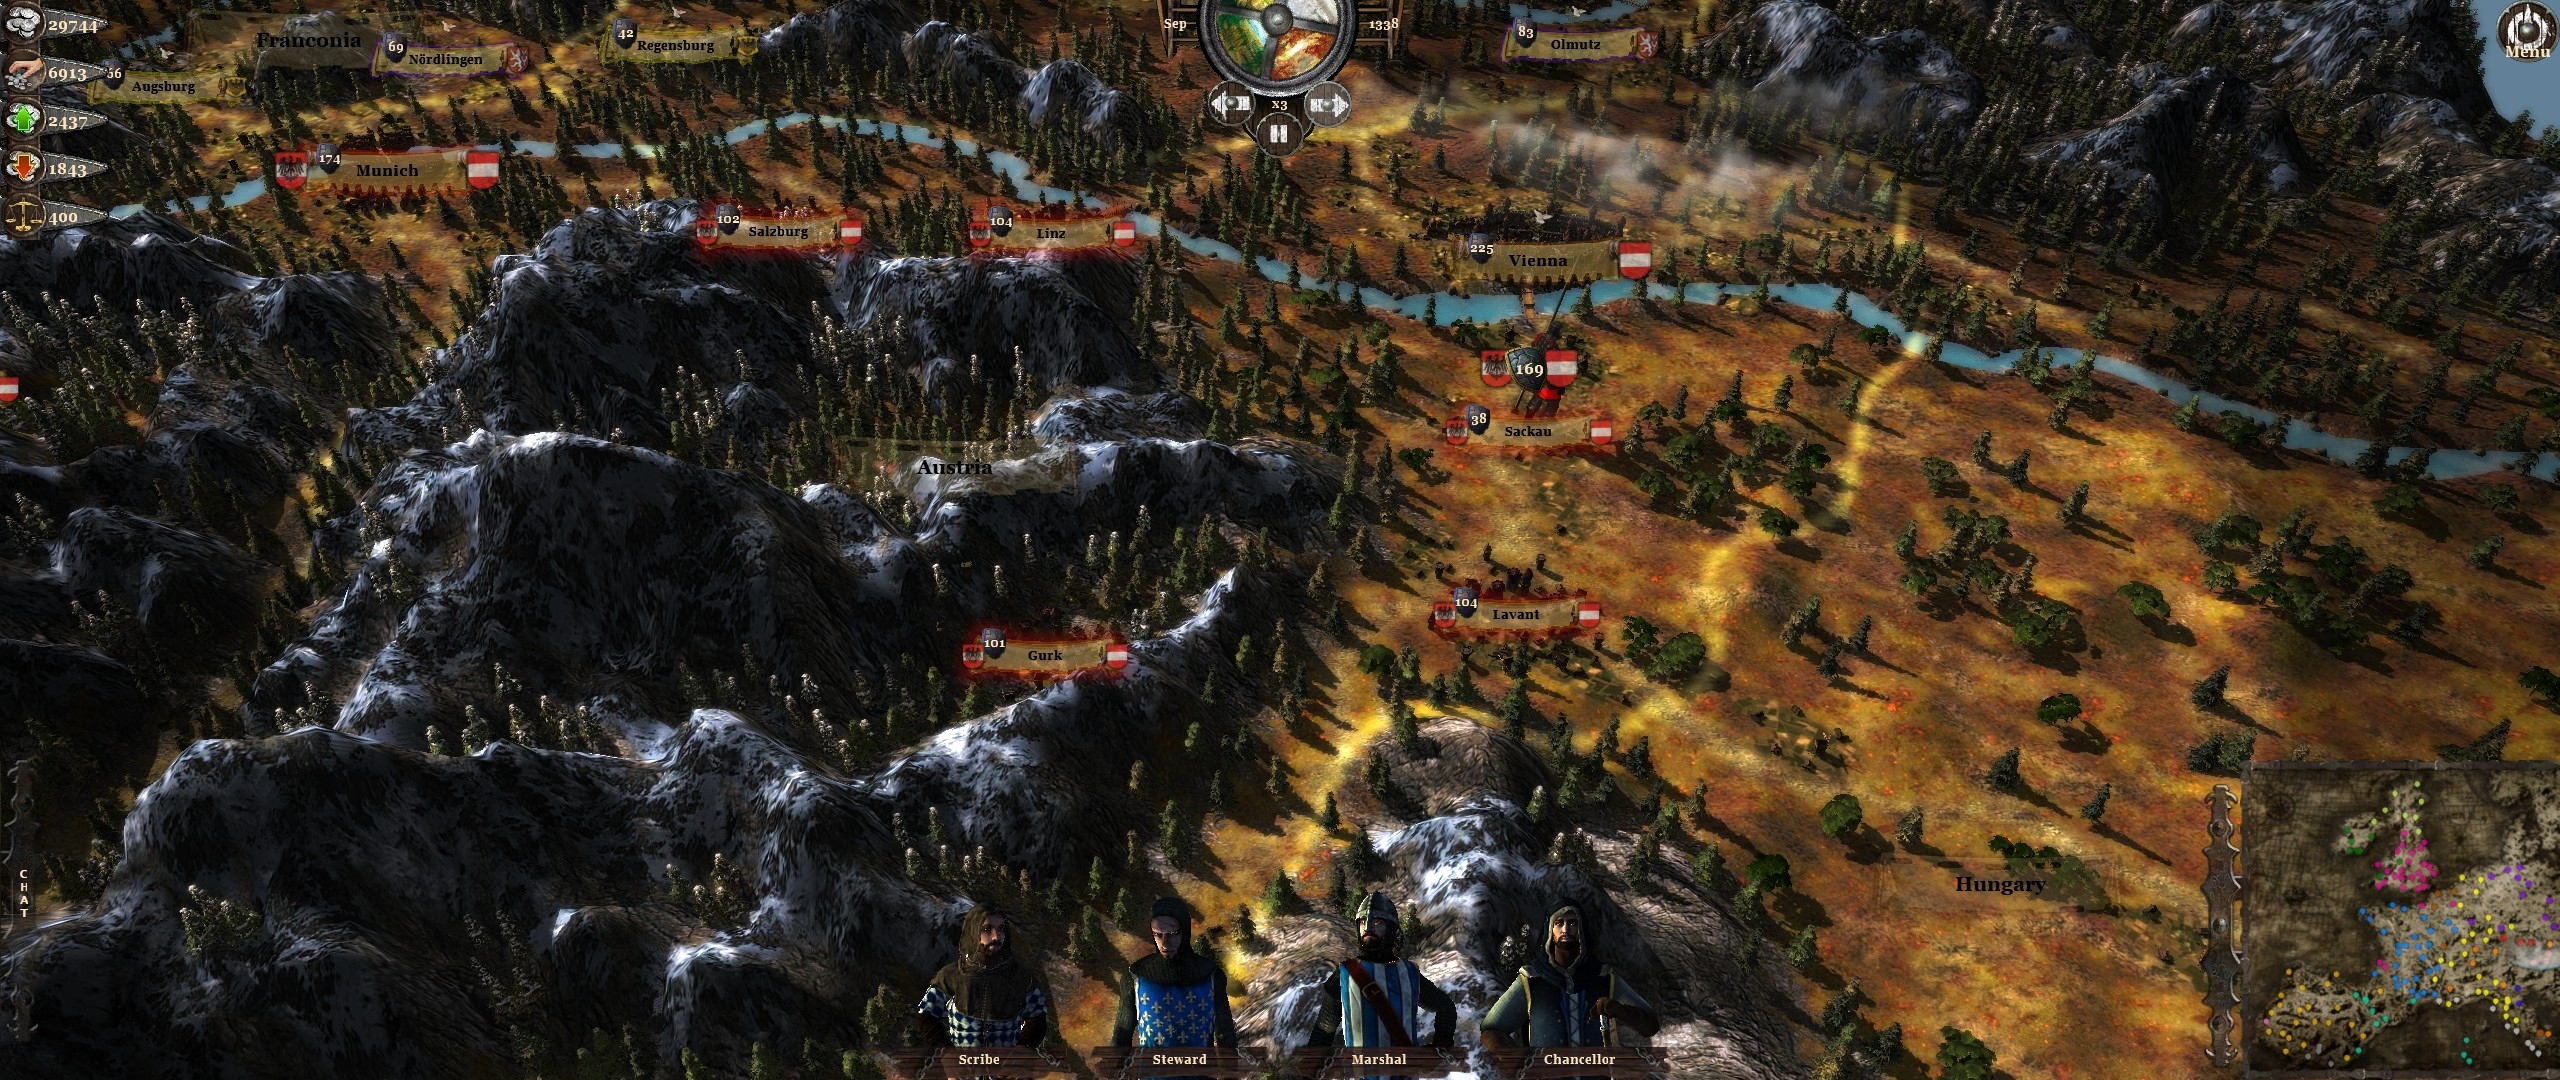 Medieval Kingdom Wars Review - Ambitious but Flawed